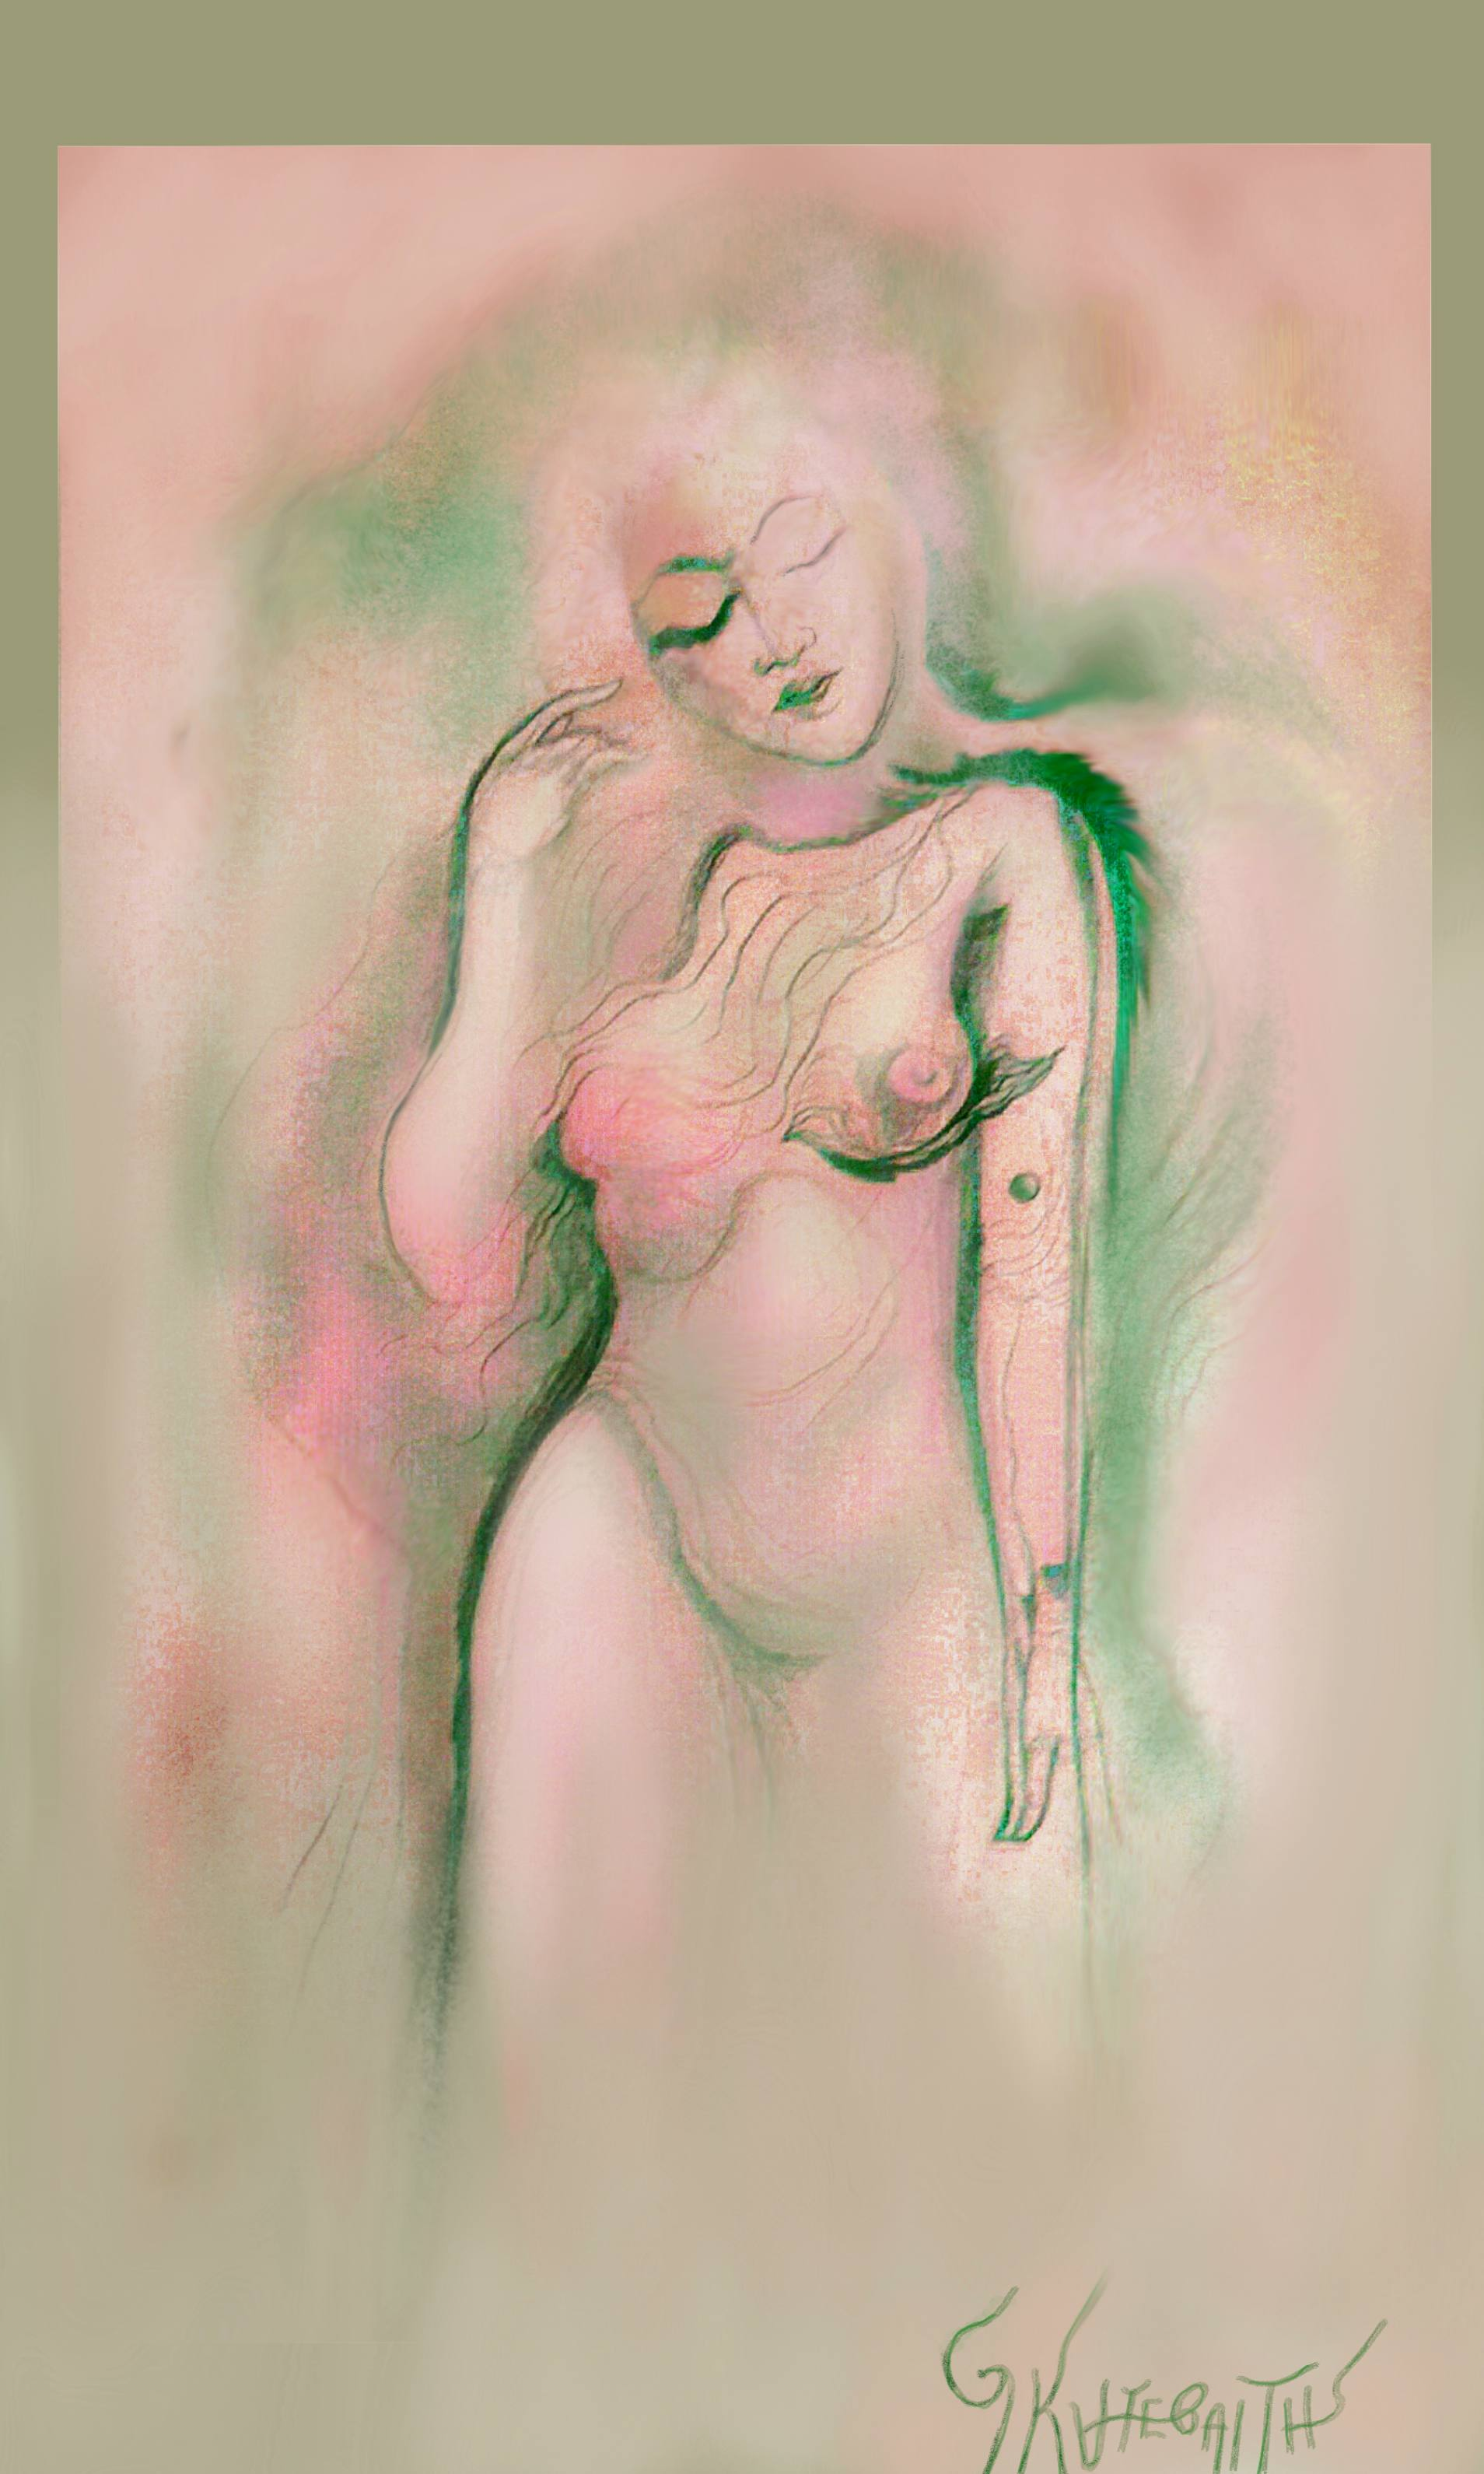 Acrylic Painting by George Katevenis titled: MEDITATION 770, created in 1996